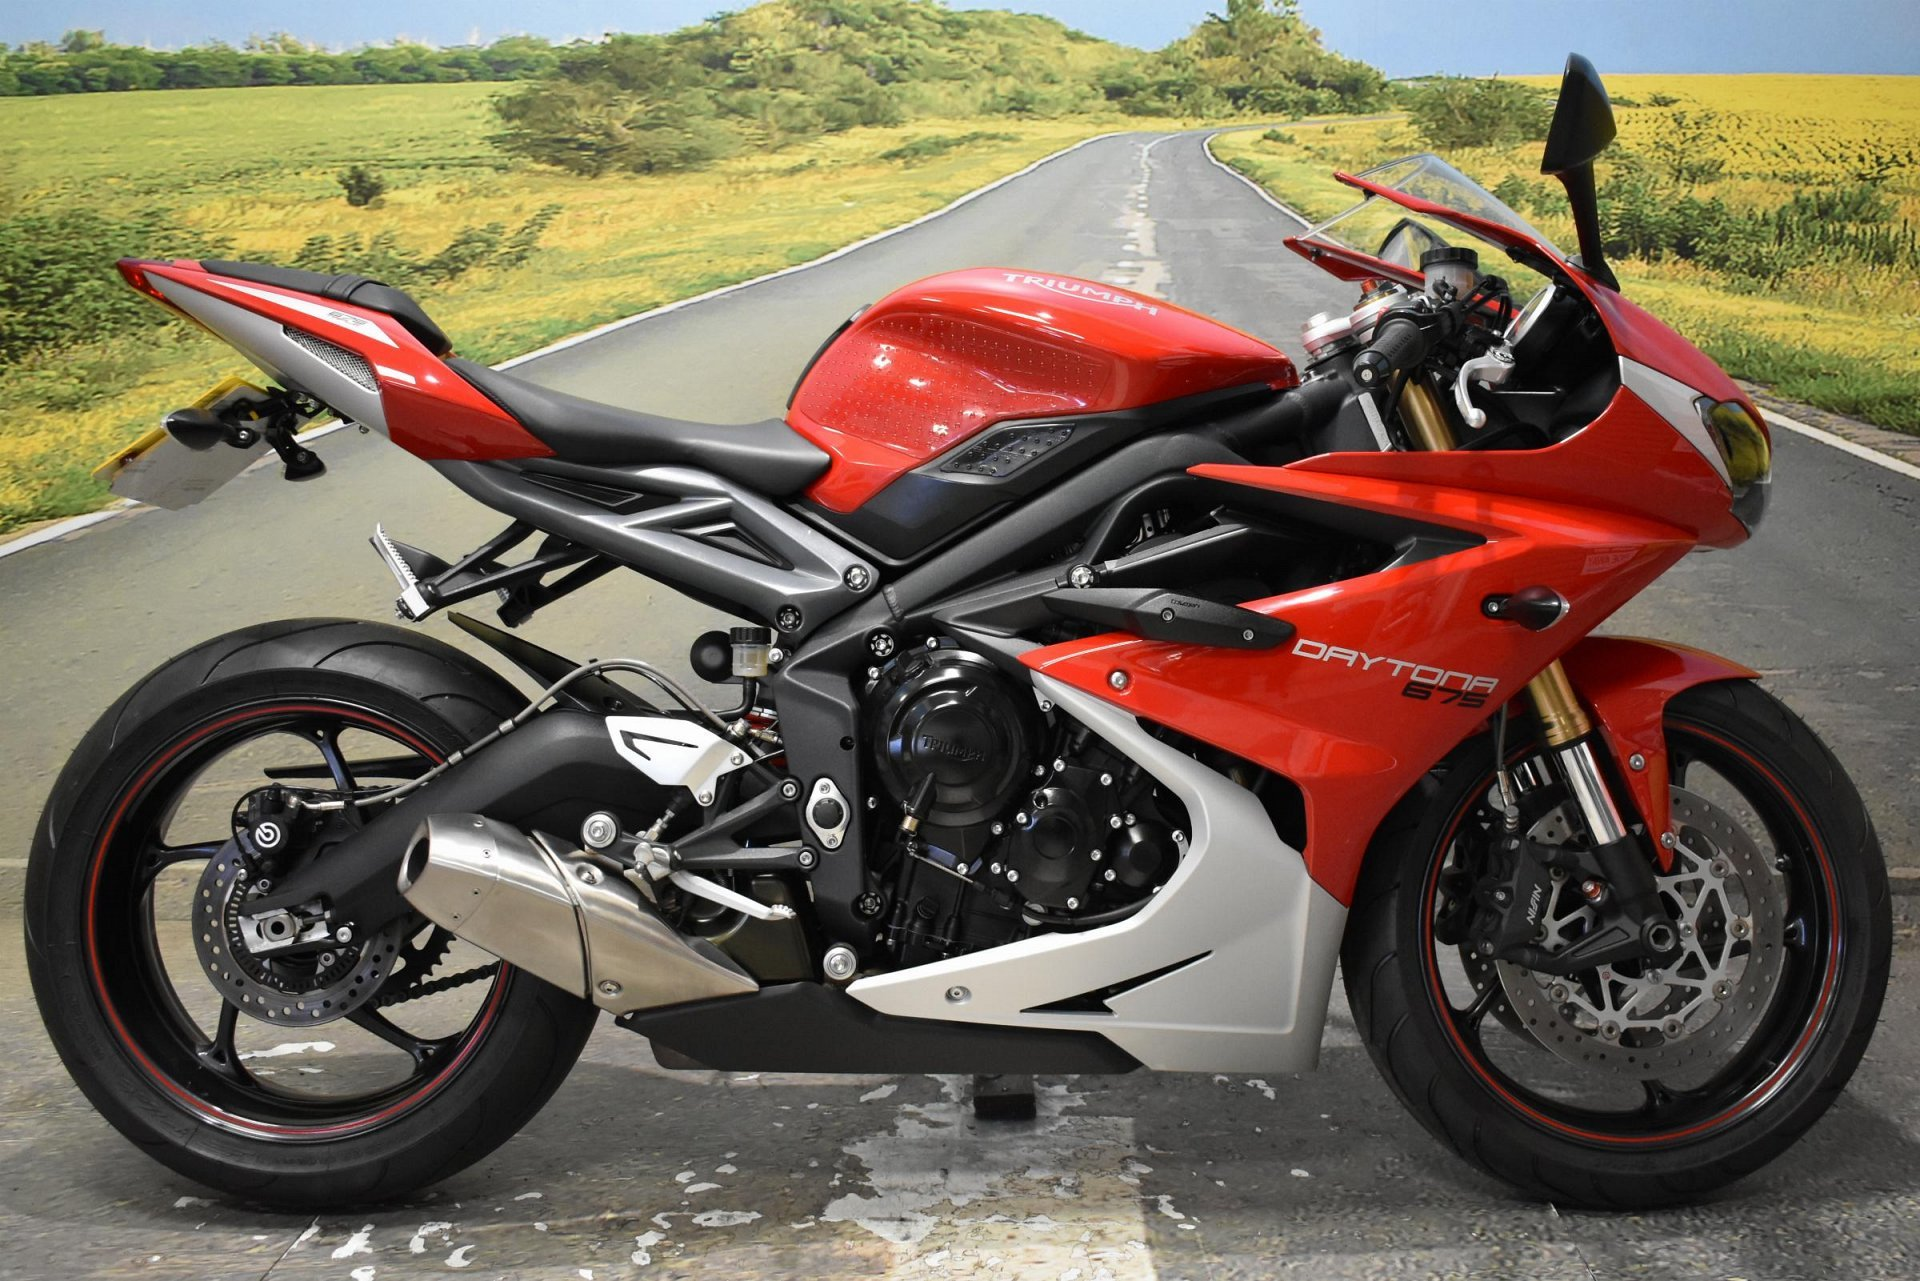 2016 Triumph Daytona 675 for sale in Derbyshire